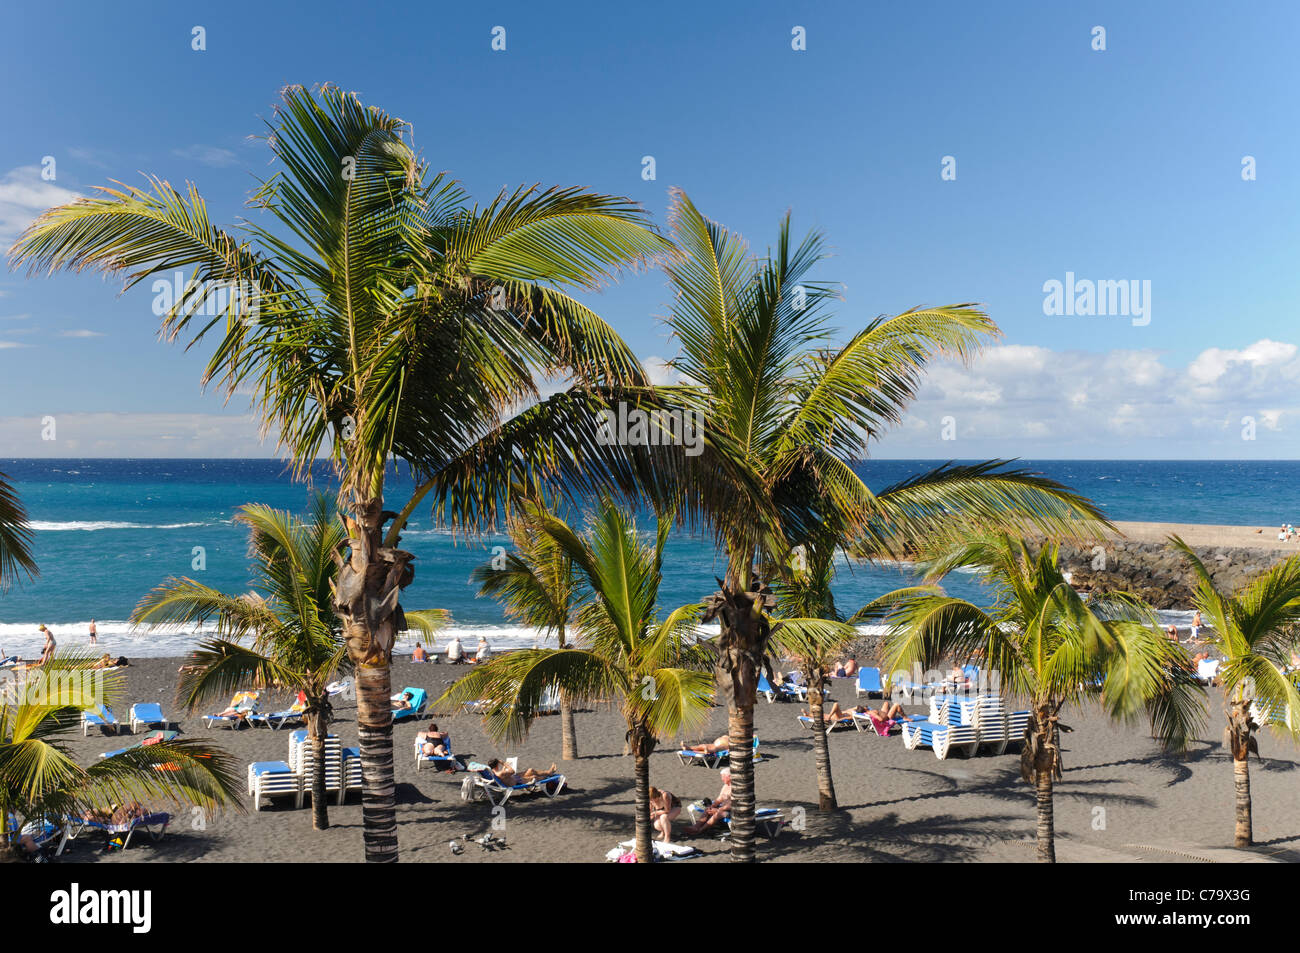 Playa jardin beach puerto de la cruz tenerife canary islands stock photo 38941380 alamy - Playa puerto de la cruz tenerife ...